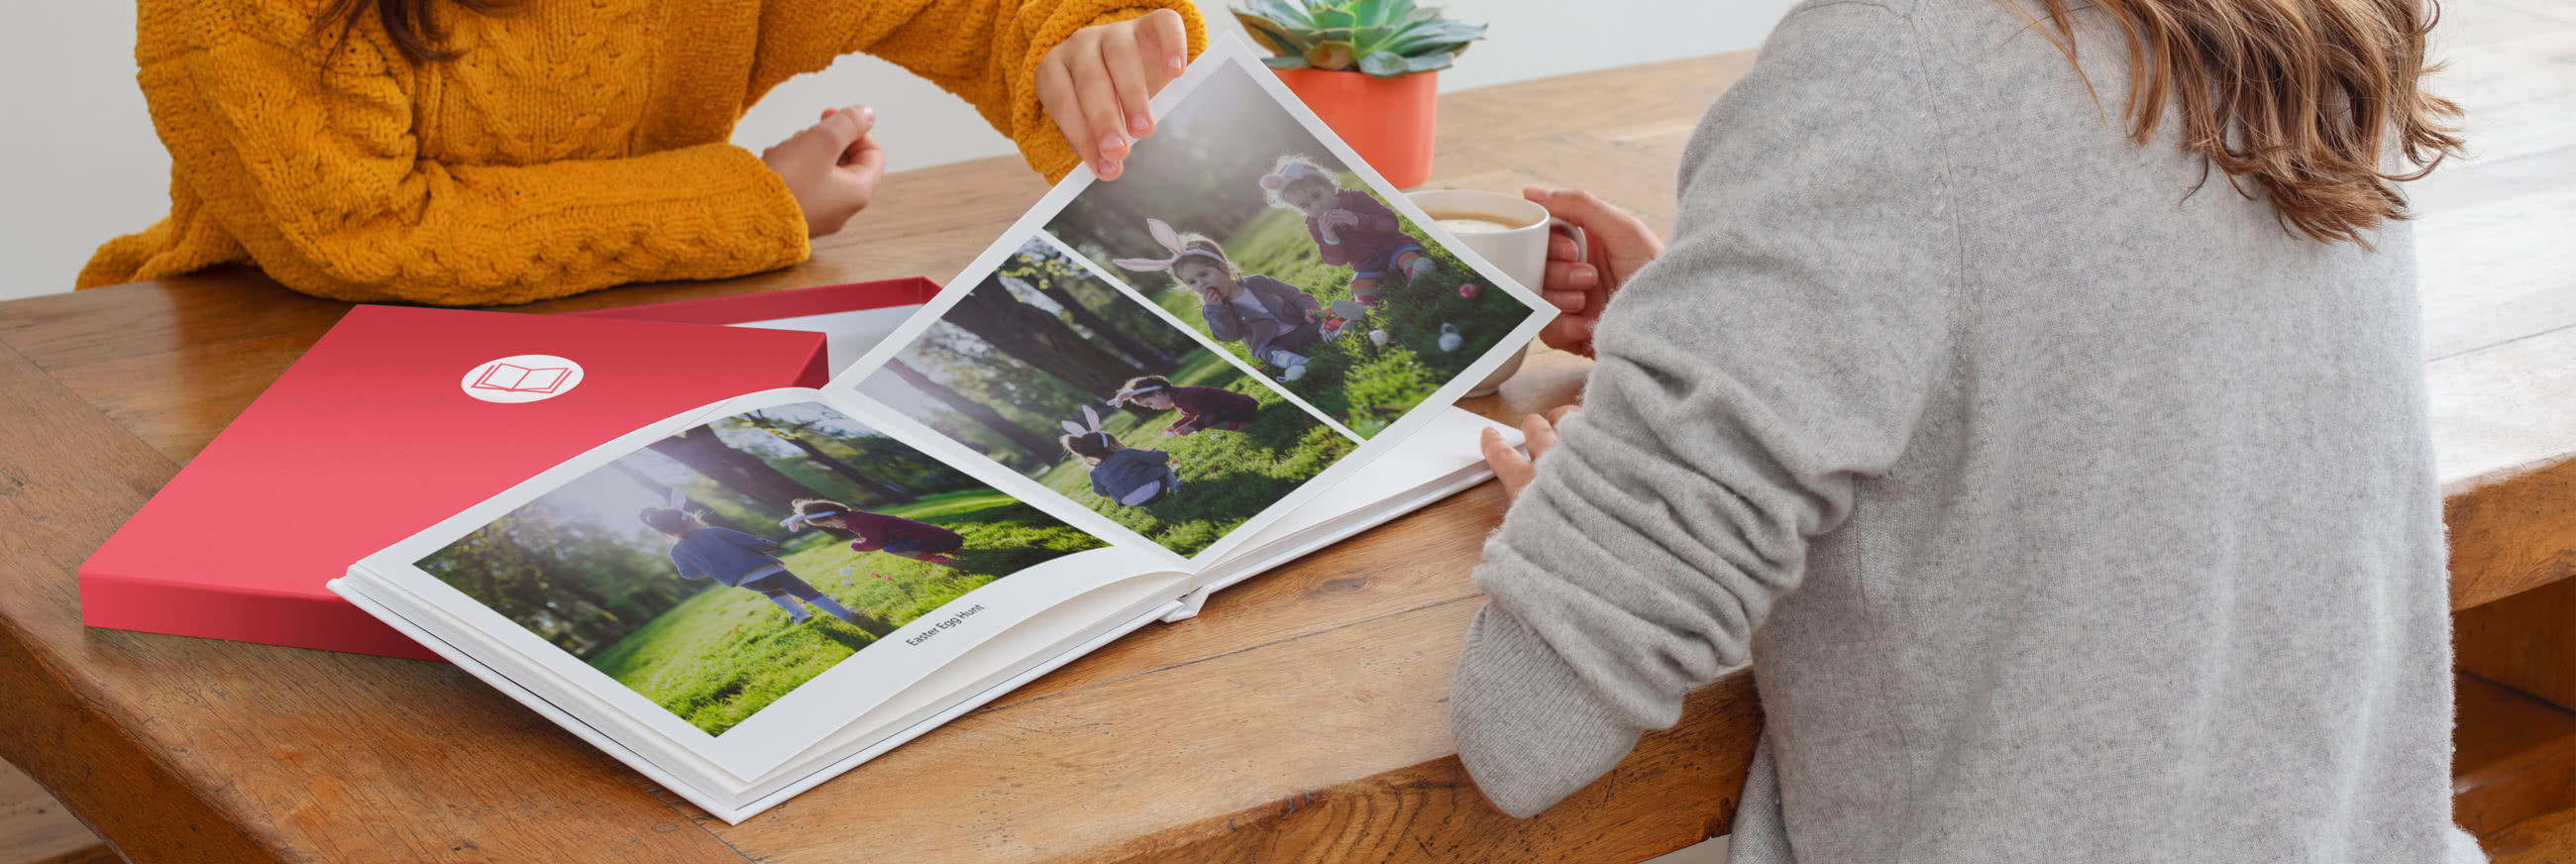 A4 Premium Hardcover Pro Lay Flat Photo Books